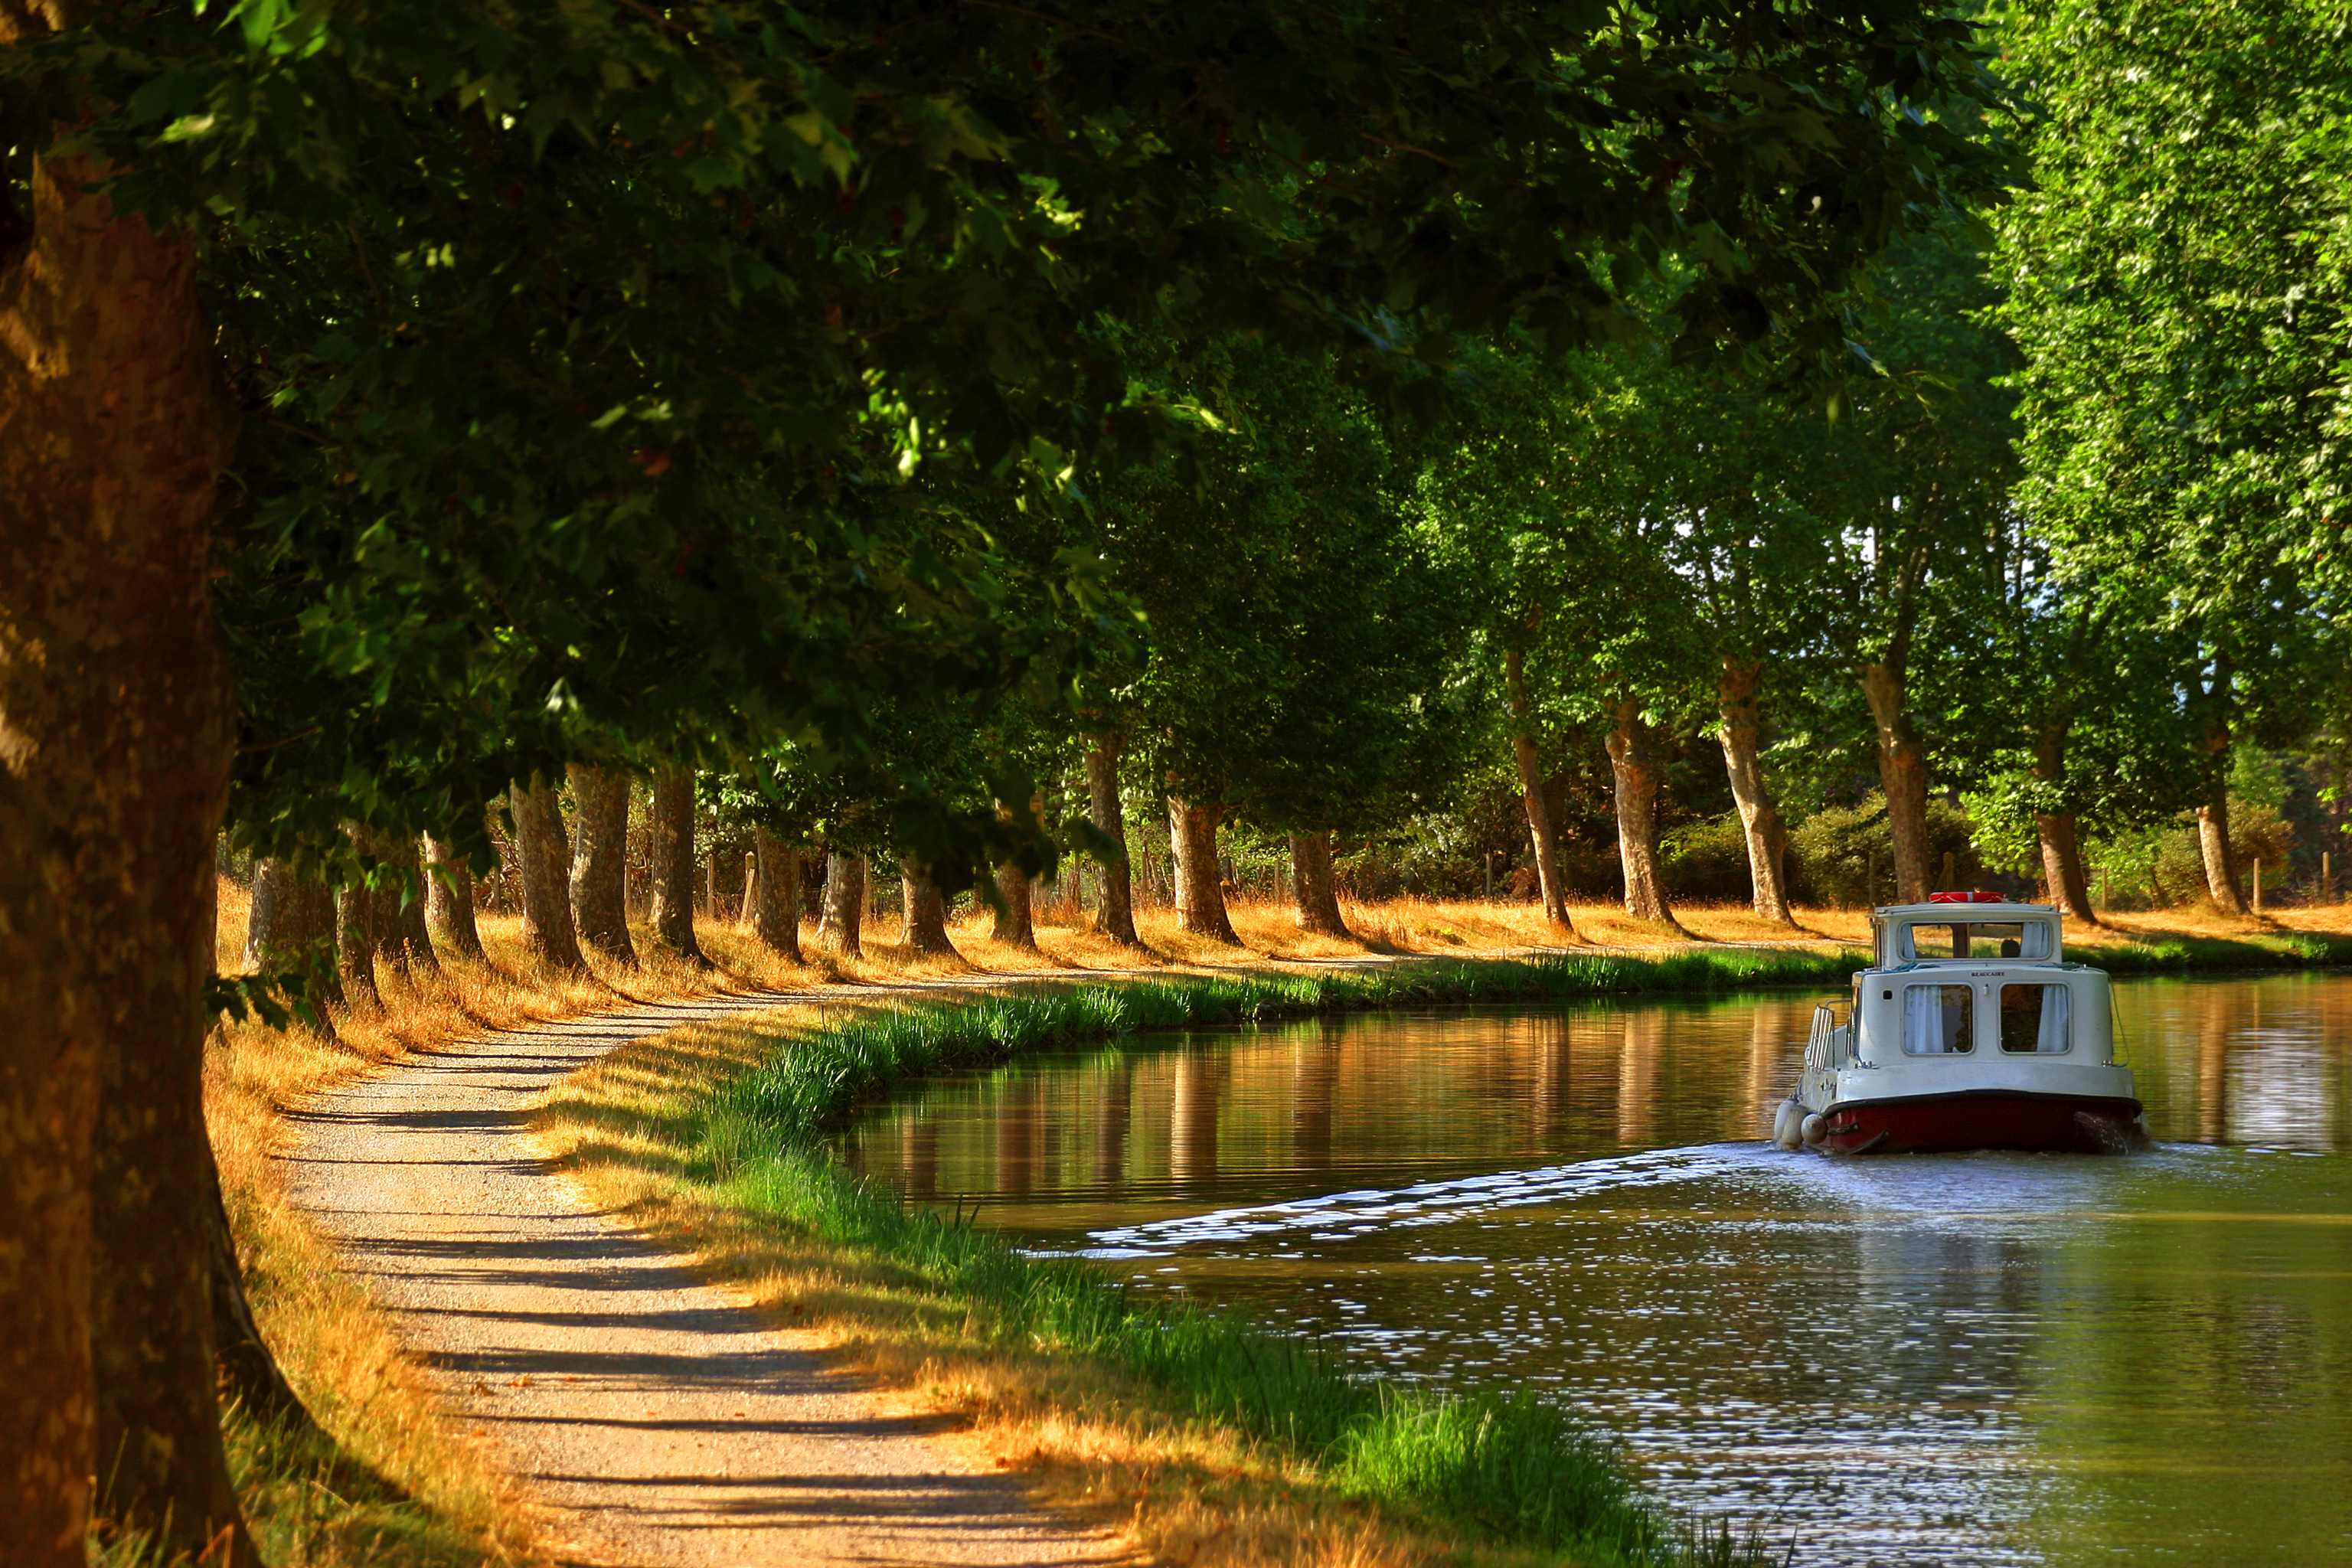 Aude Department, Canal du Midi